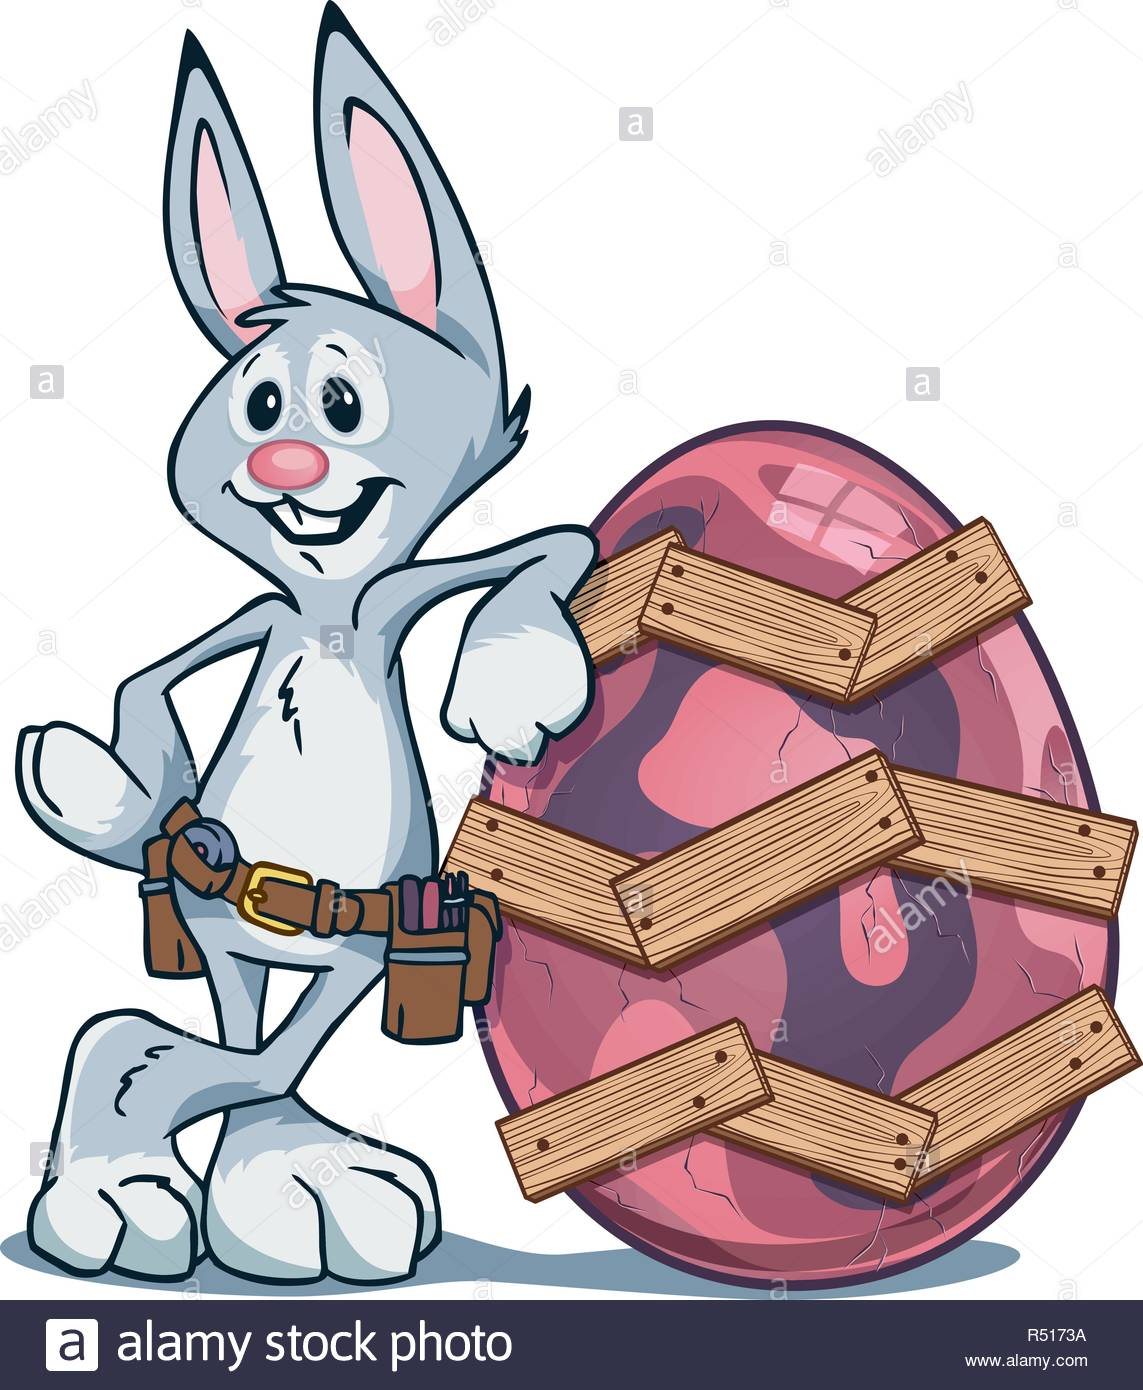 Easter Bunny leaning against cracked Easter egg that he repaired using wooden boards and nails. - Stock Image